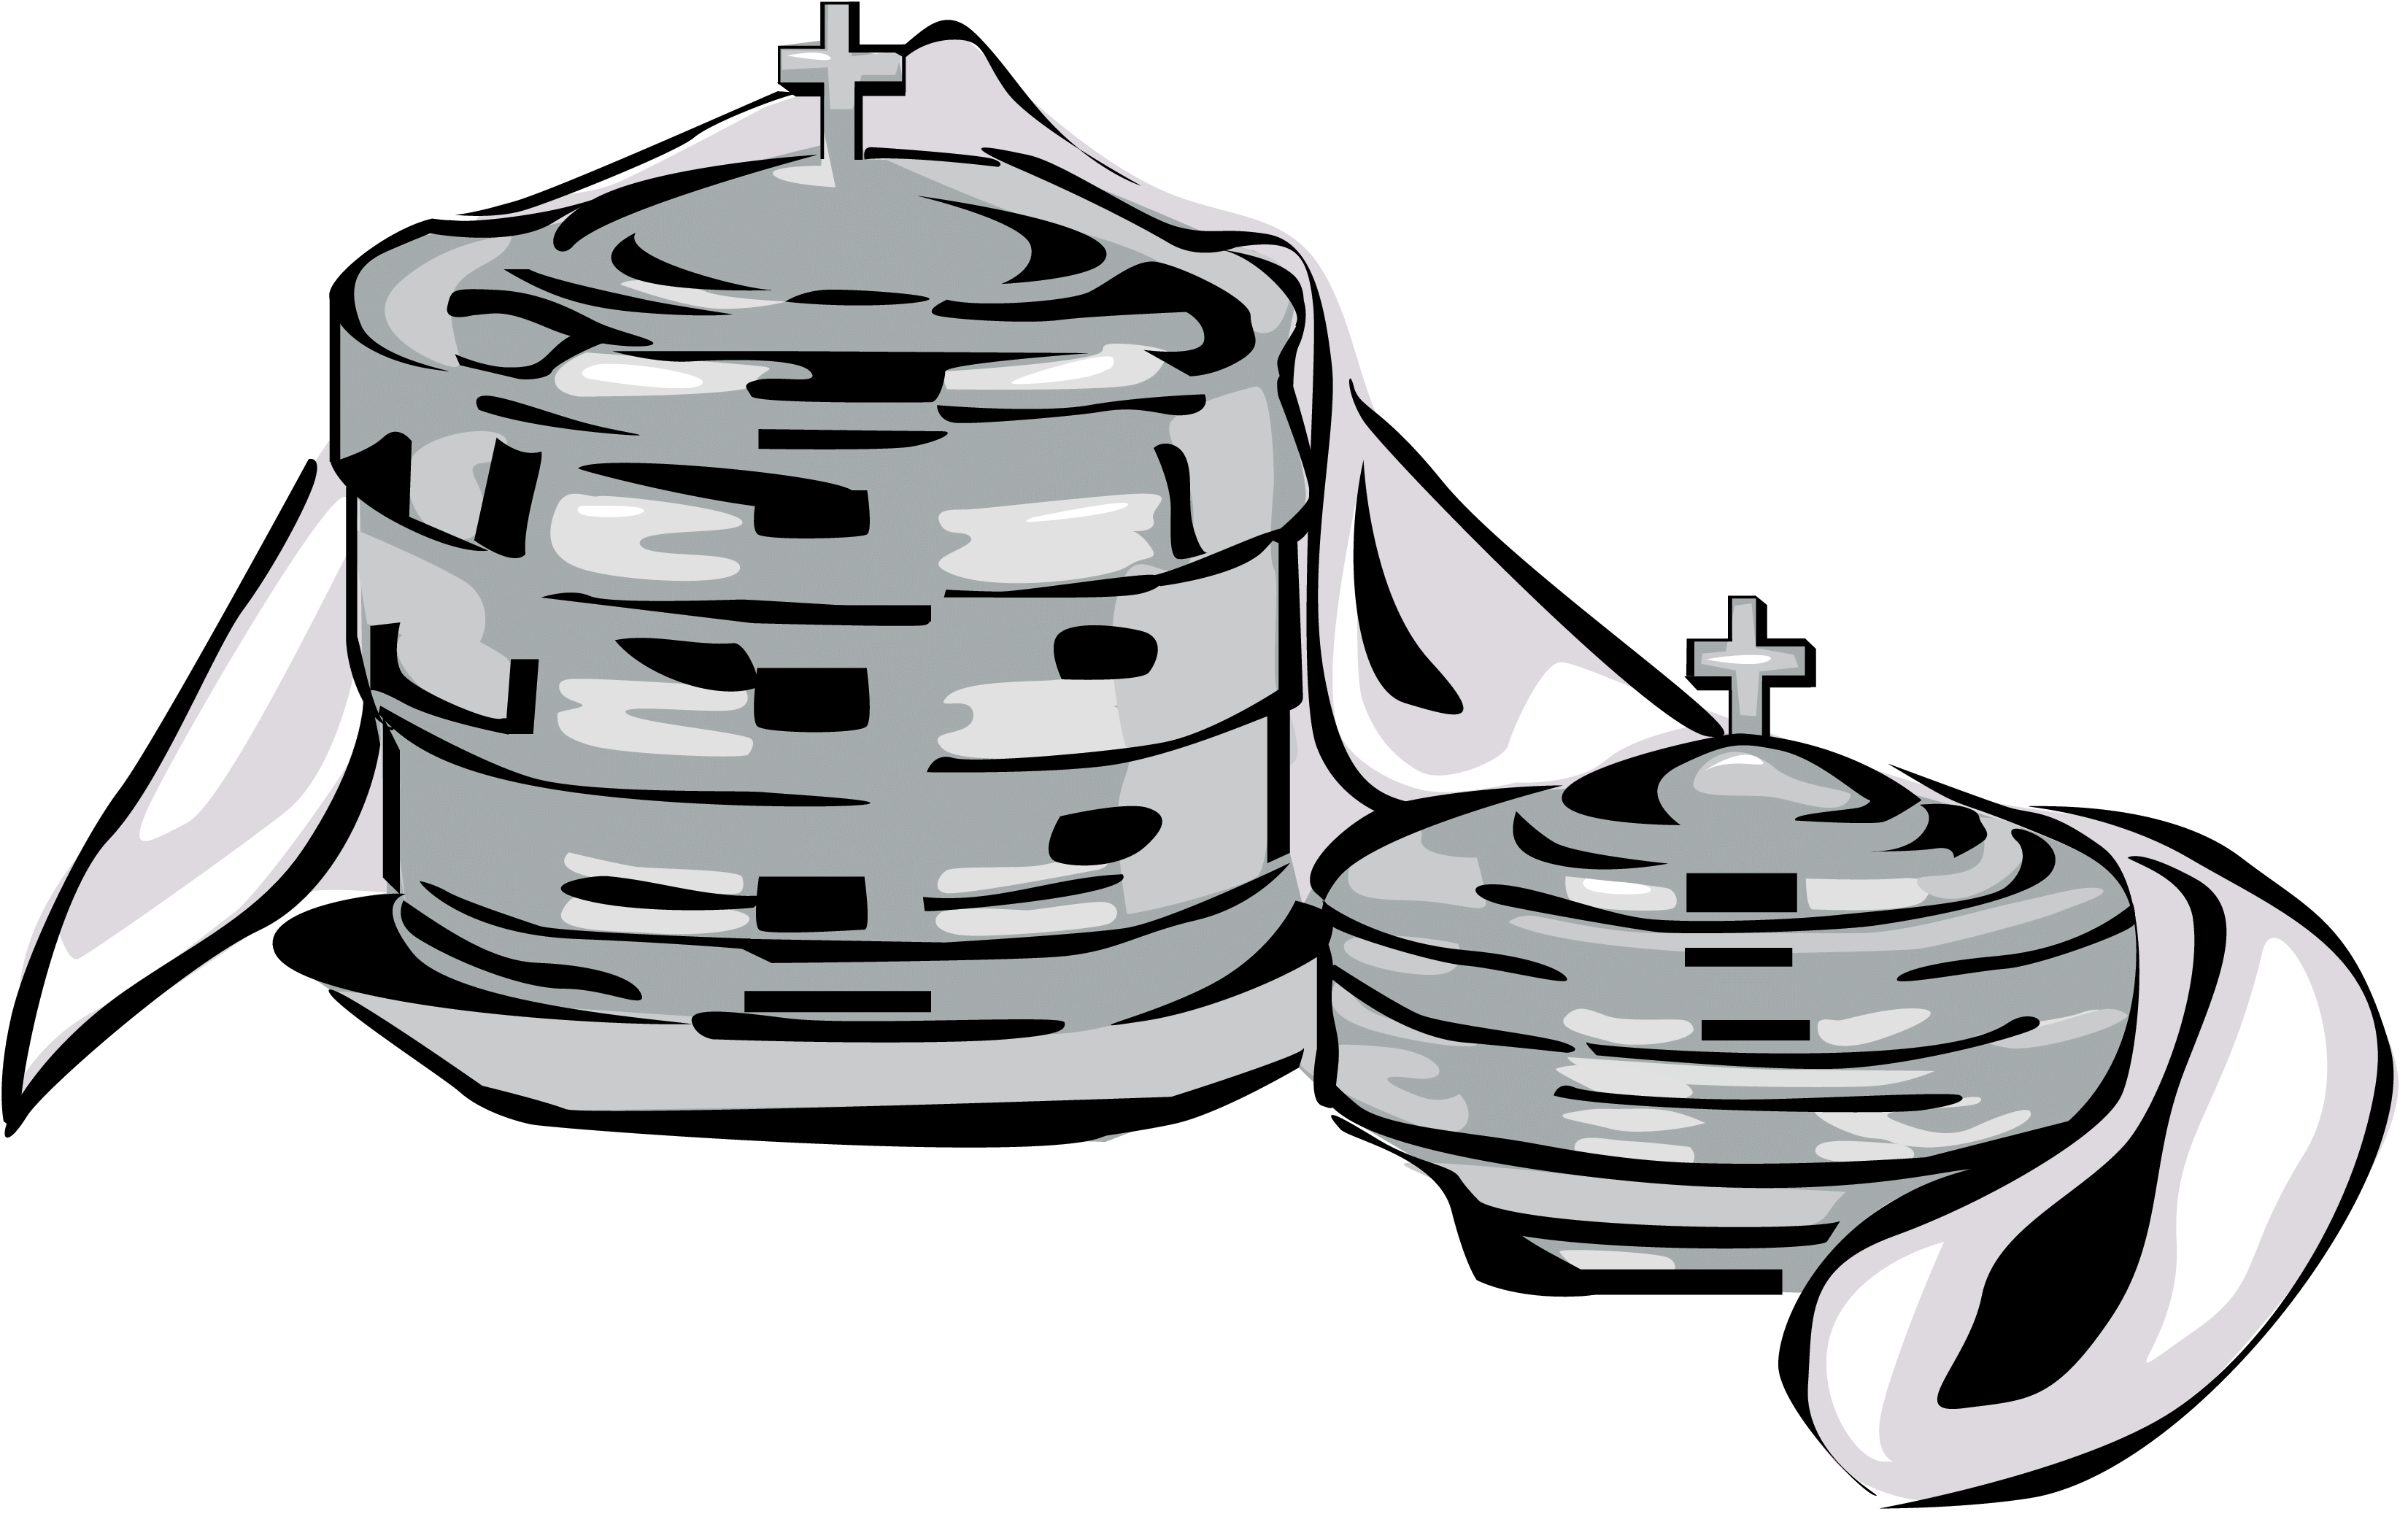 African american christian clipart communion vector black and white stock Christian Communion Cliparts - Cliparts Zone vector black and white stock